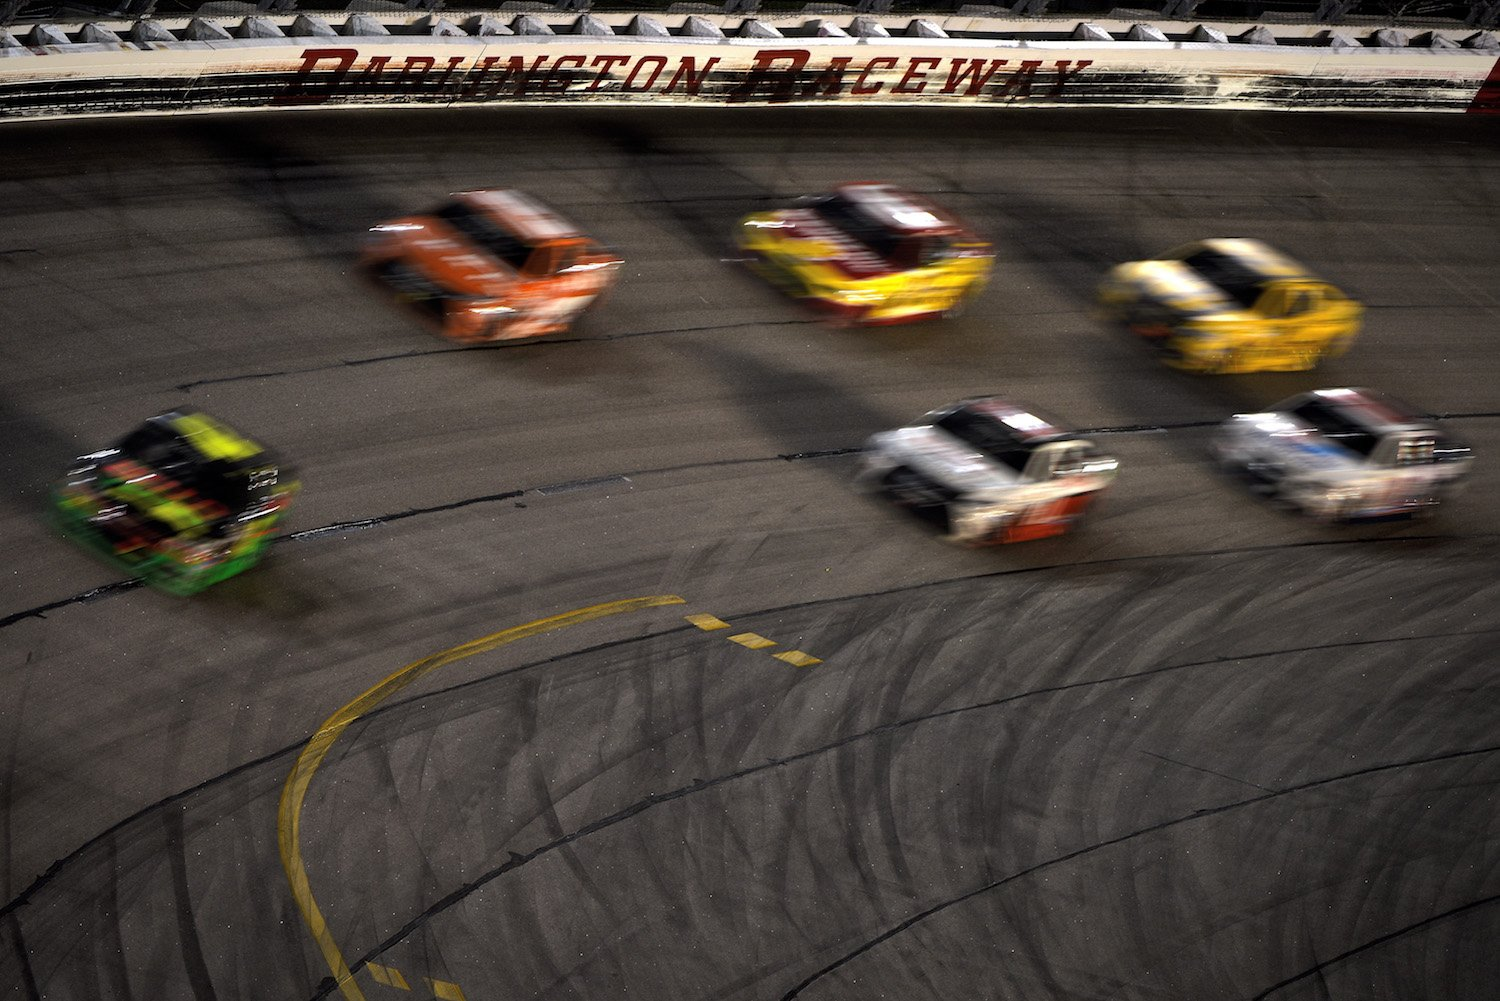 DARLINGTON, SC - SEPTEMBER 06: Kyle Larson, driver of the #42 Mello Yello Chevrolet, leads a pack of cars during the NASCAR Sprint Cup Series Bojangles' Southern 500 at Darlington Raceway on September 6, 2015 in Darlington, South Carolina. (Photo by Jonathan Moore/Getty Images)